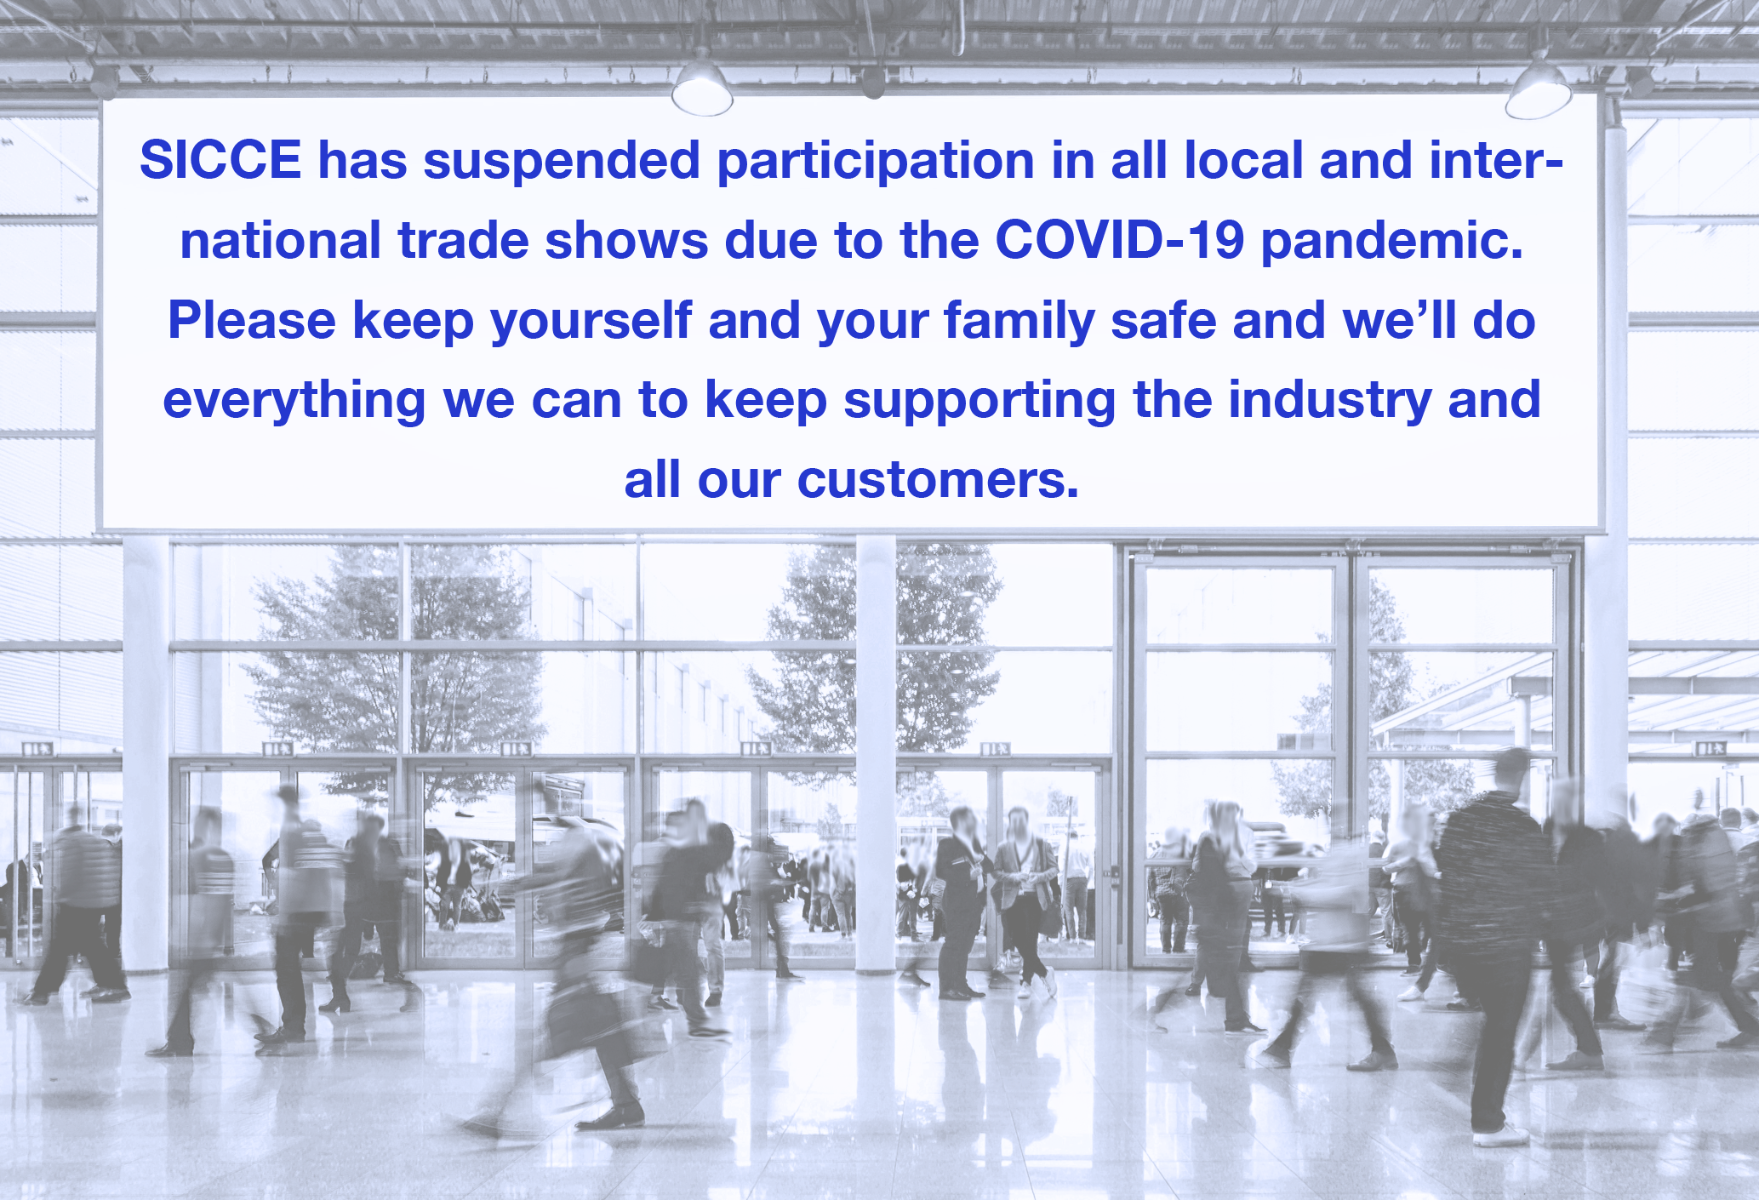 tradeshow suspension